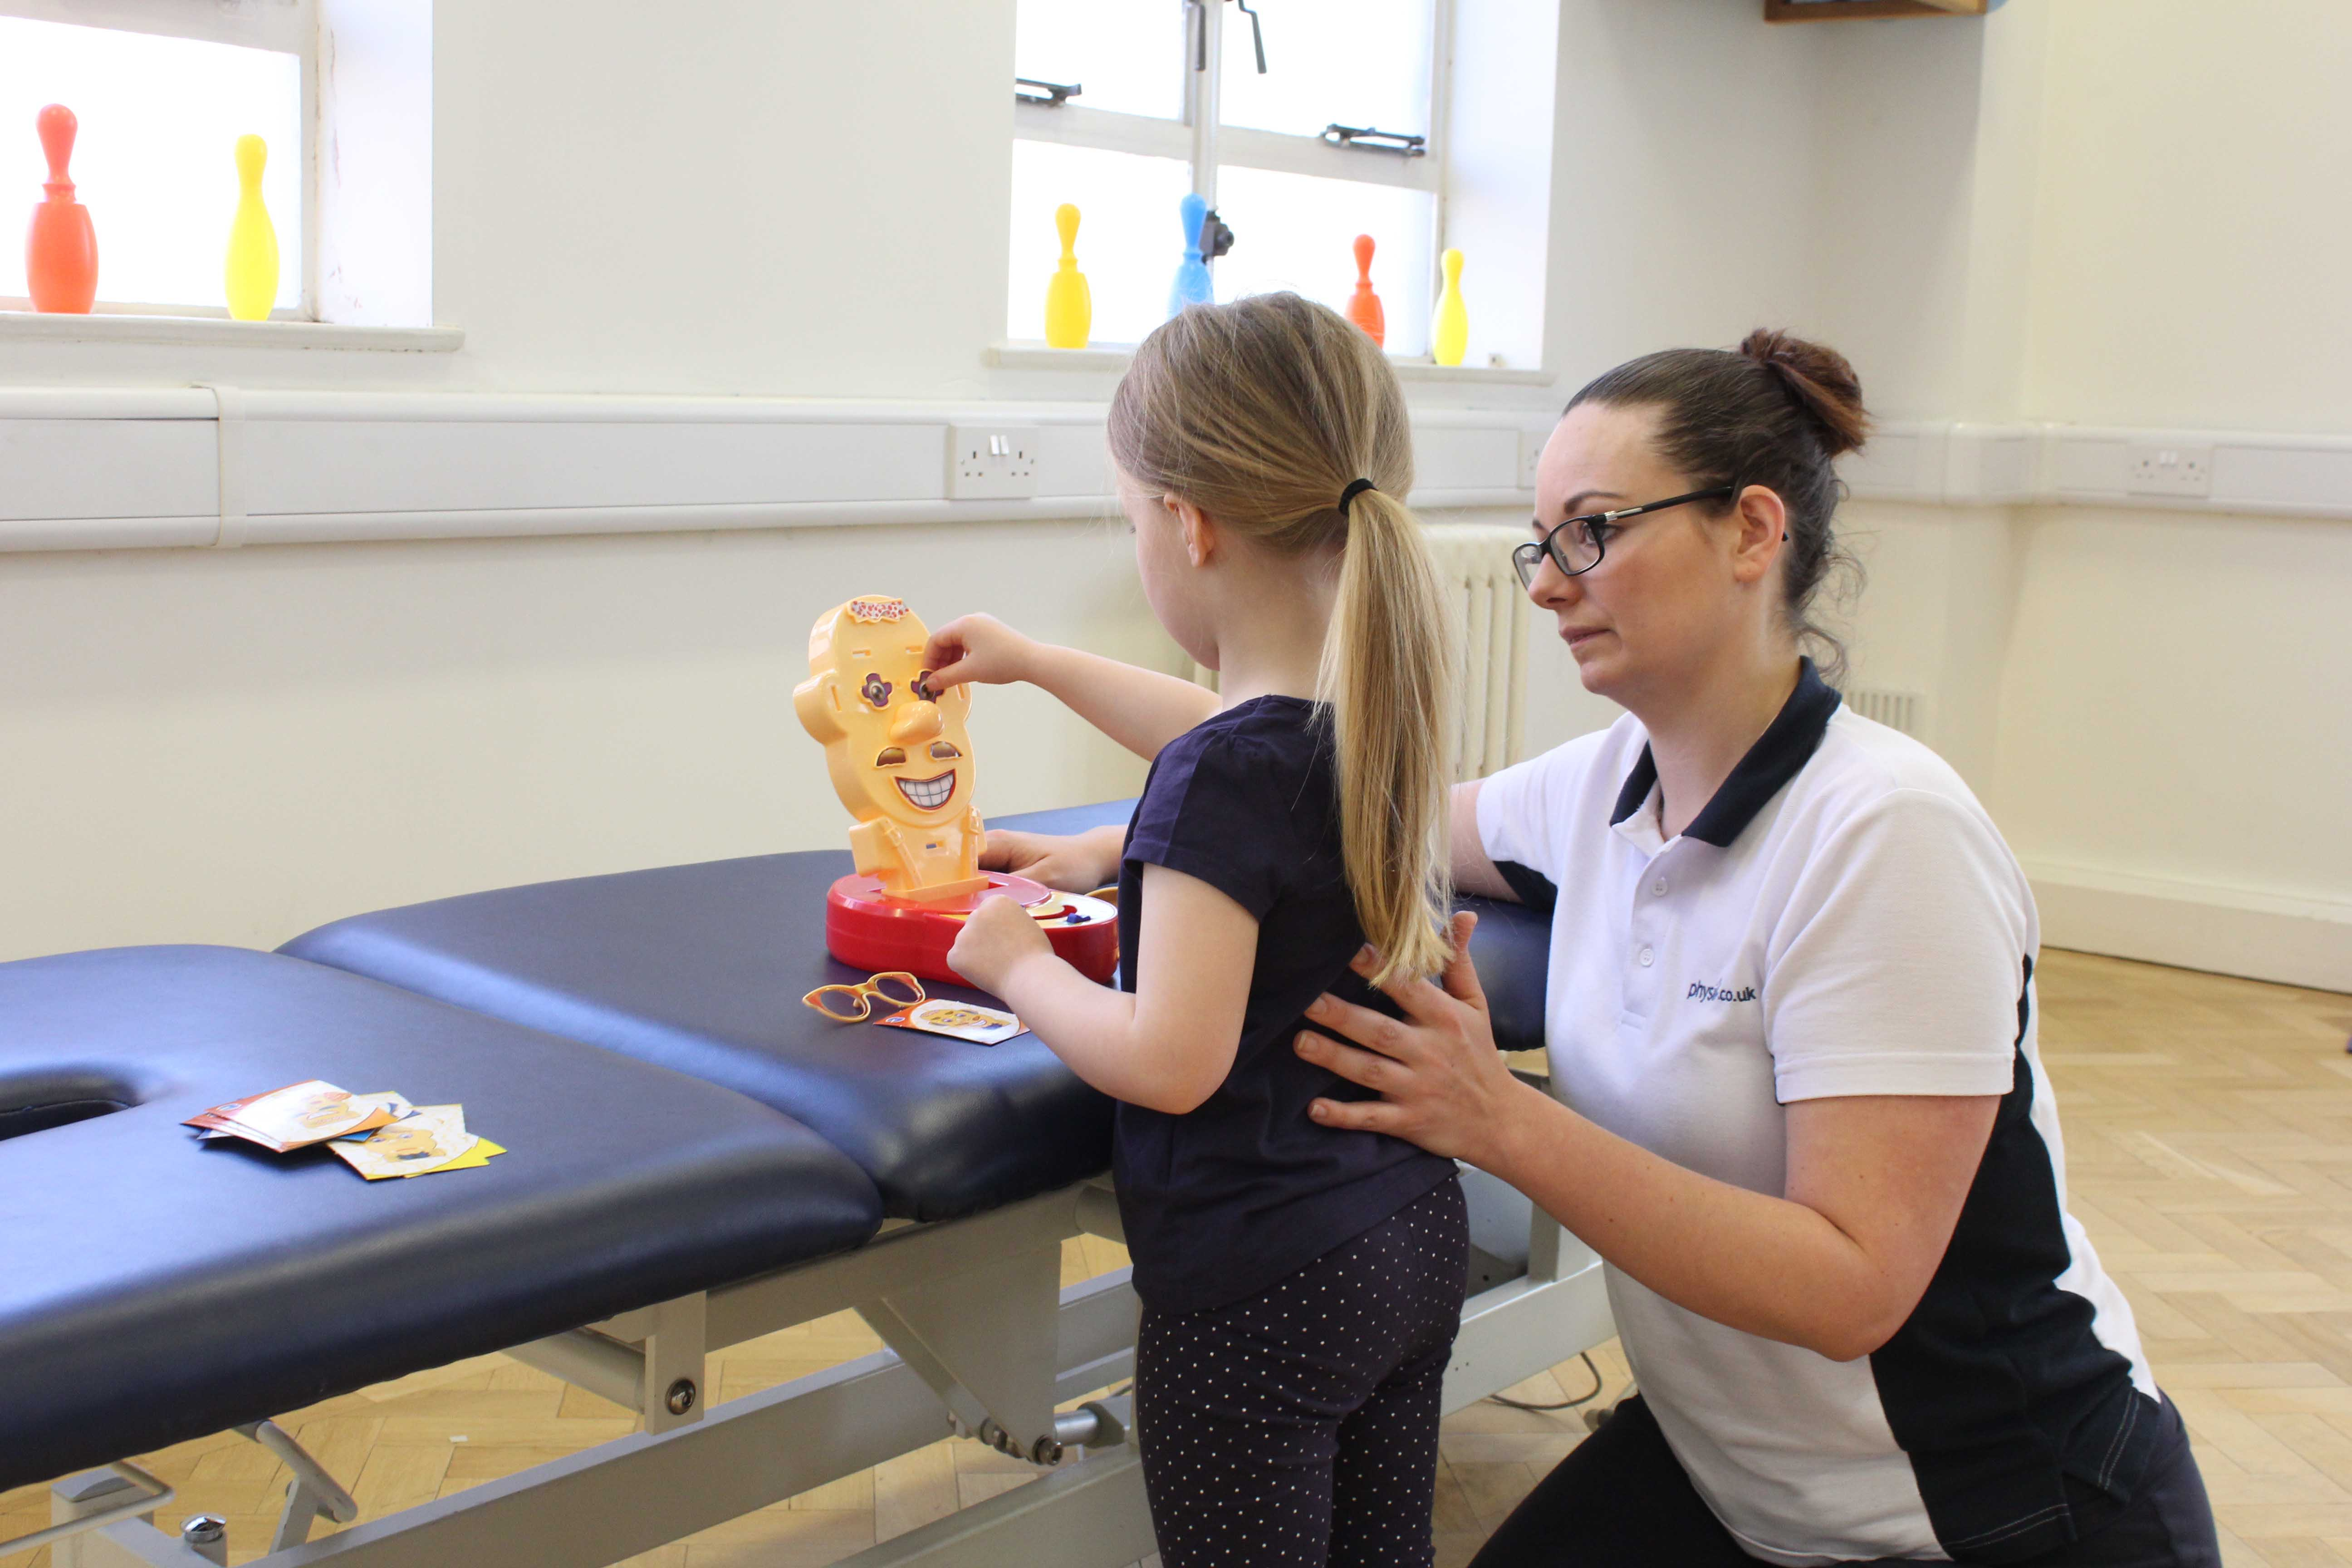 Functional fine motor skill exercises supervised by a neurological physiotherapist